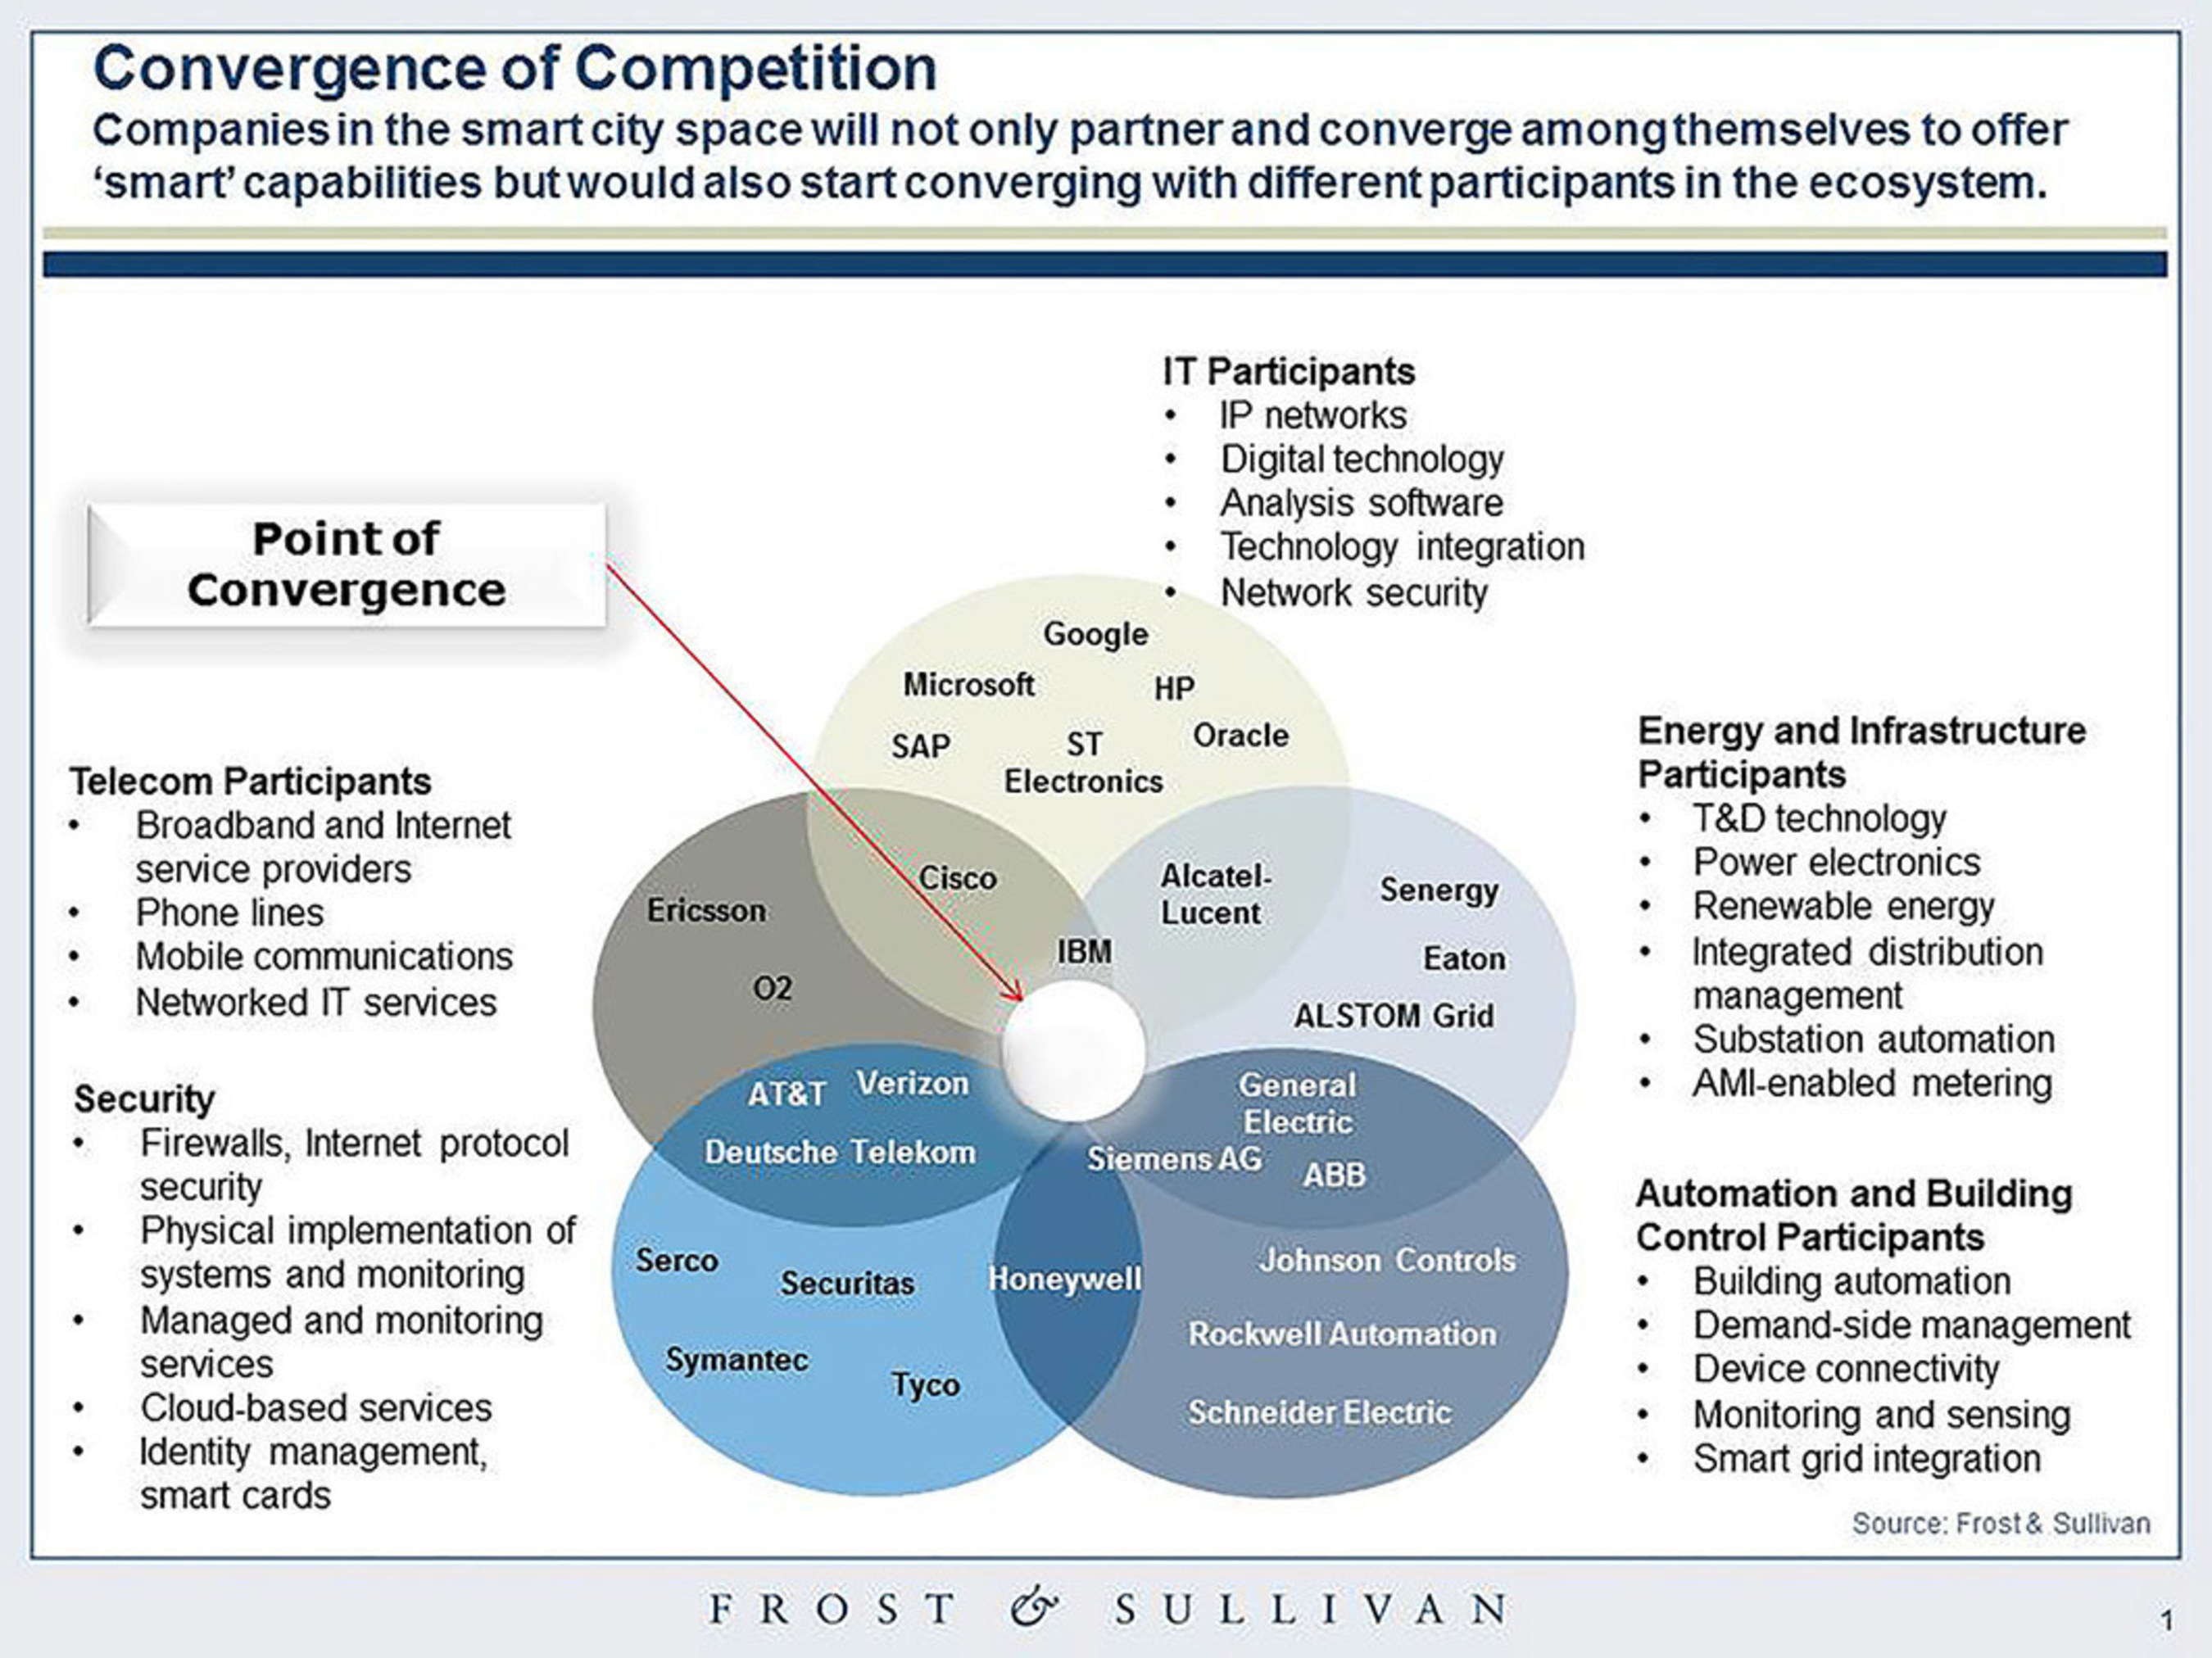 Convergence to Define New Business Models in the Future, says Frost & Sullivan